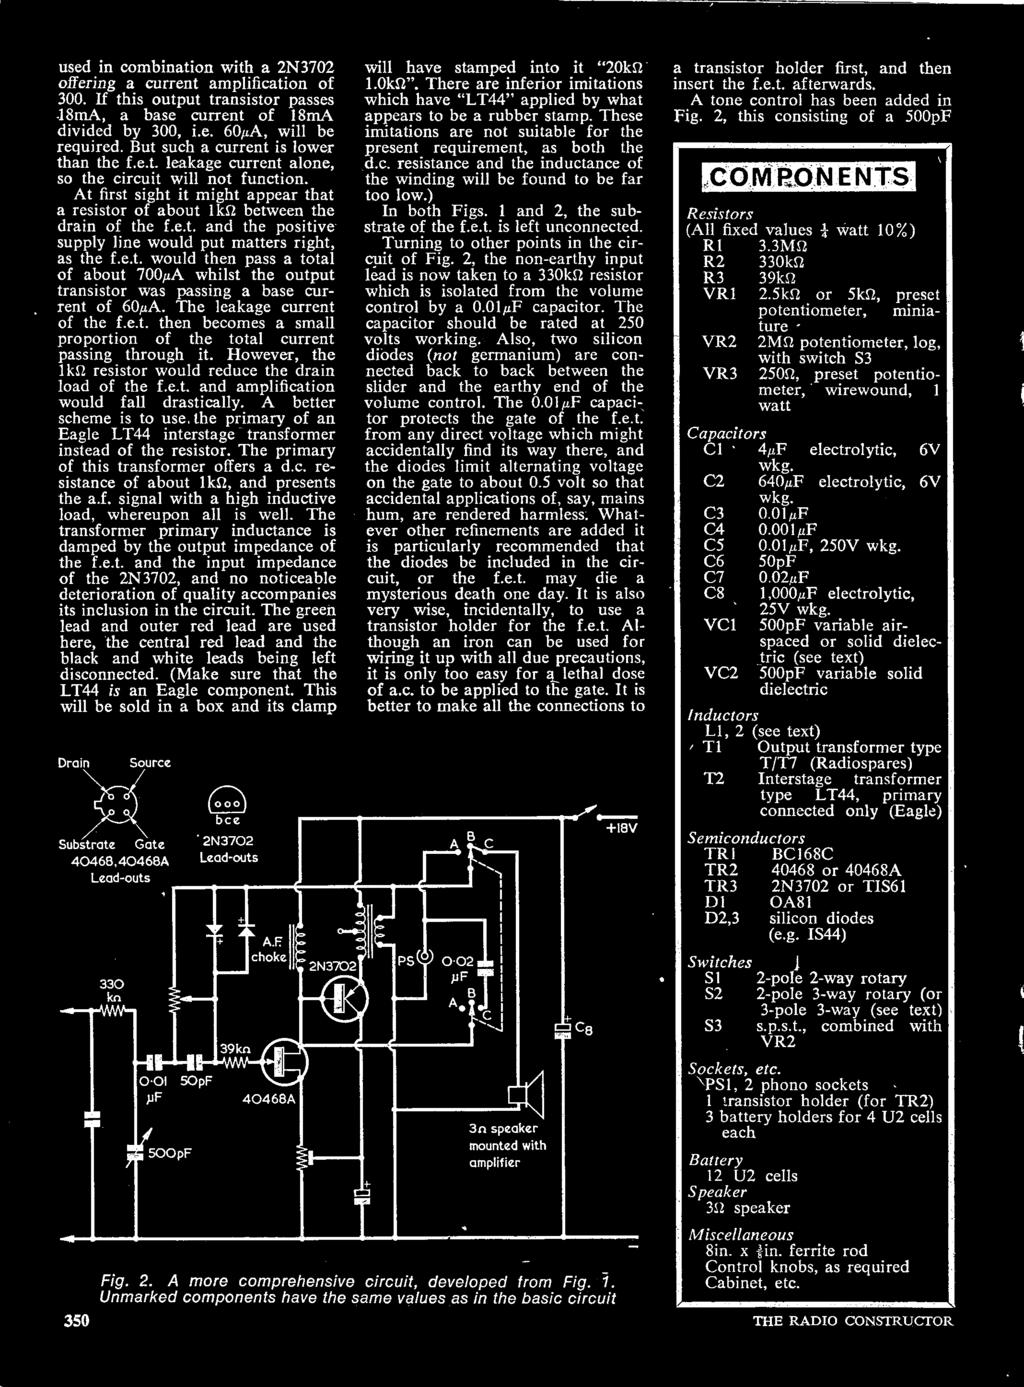 The Radio Constructor Vol 23 No 6 January 1970 Three Shillings Pdf Push Pull Pot Custom Wiring Options 1 Use Our 1215 250k A Better Scheme Is To Primary Of An Eagle Lt44 Interstage Transformer Instead